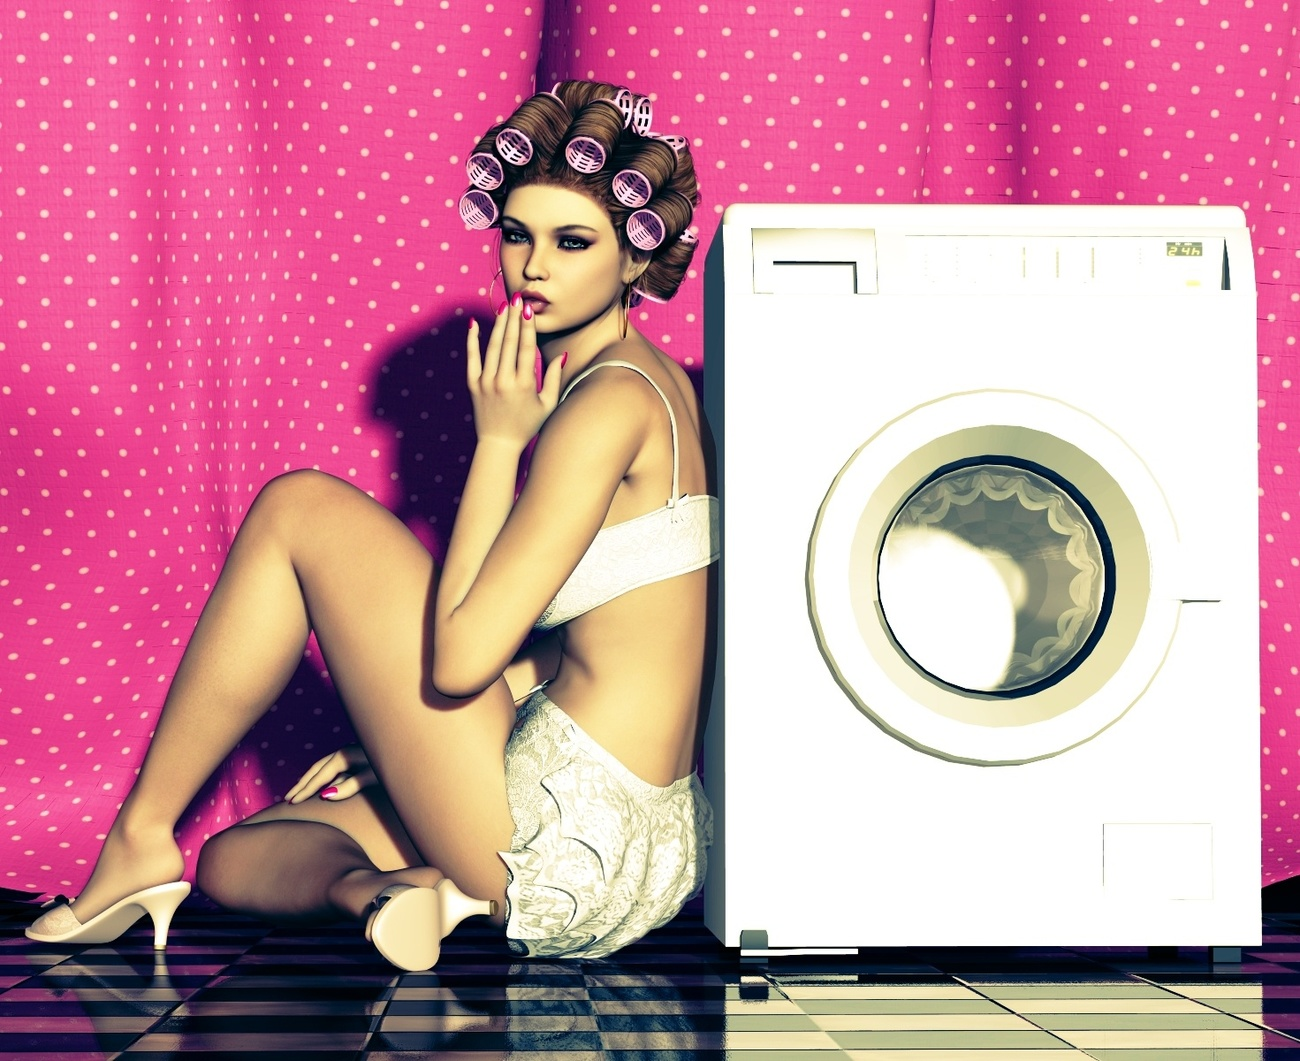 Dirty Laundry *For Jim* by Savage_dragon